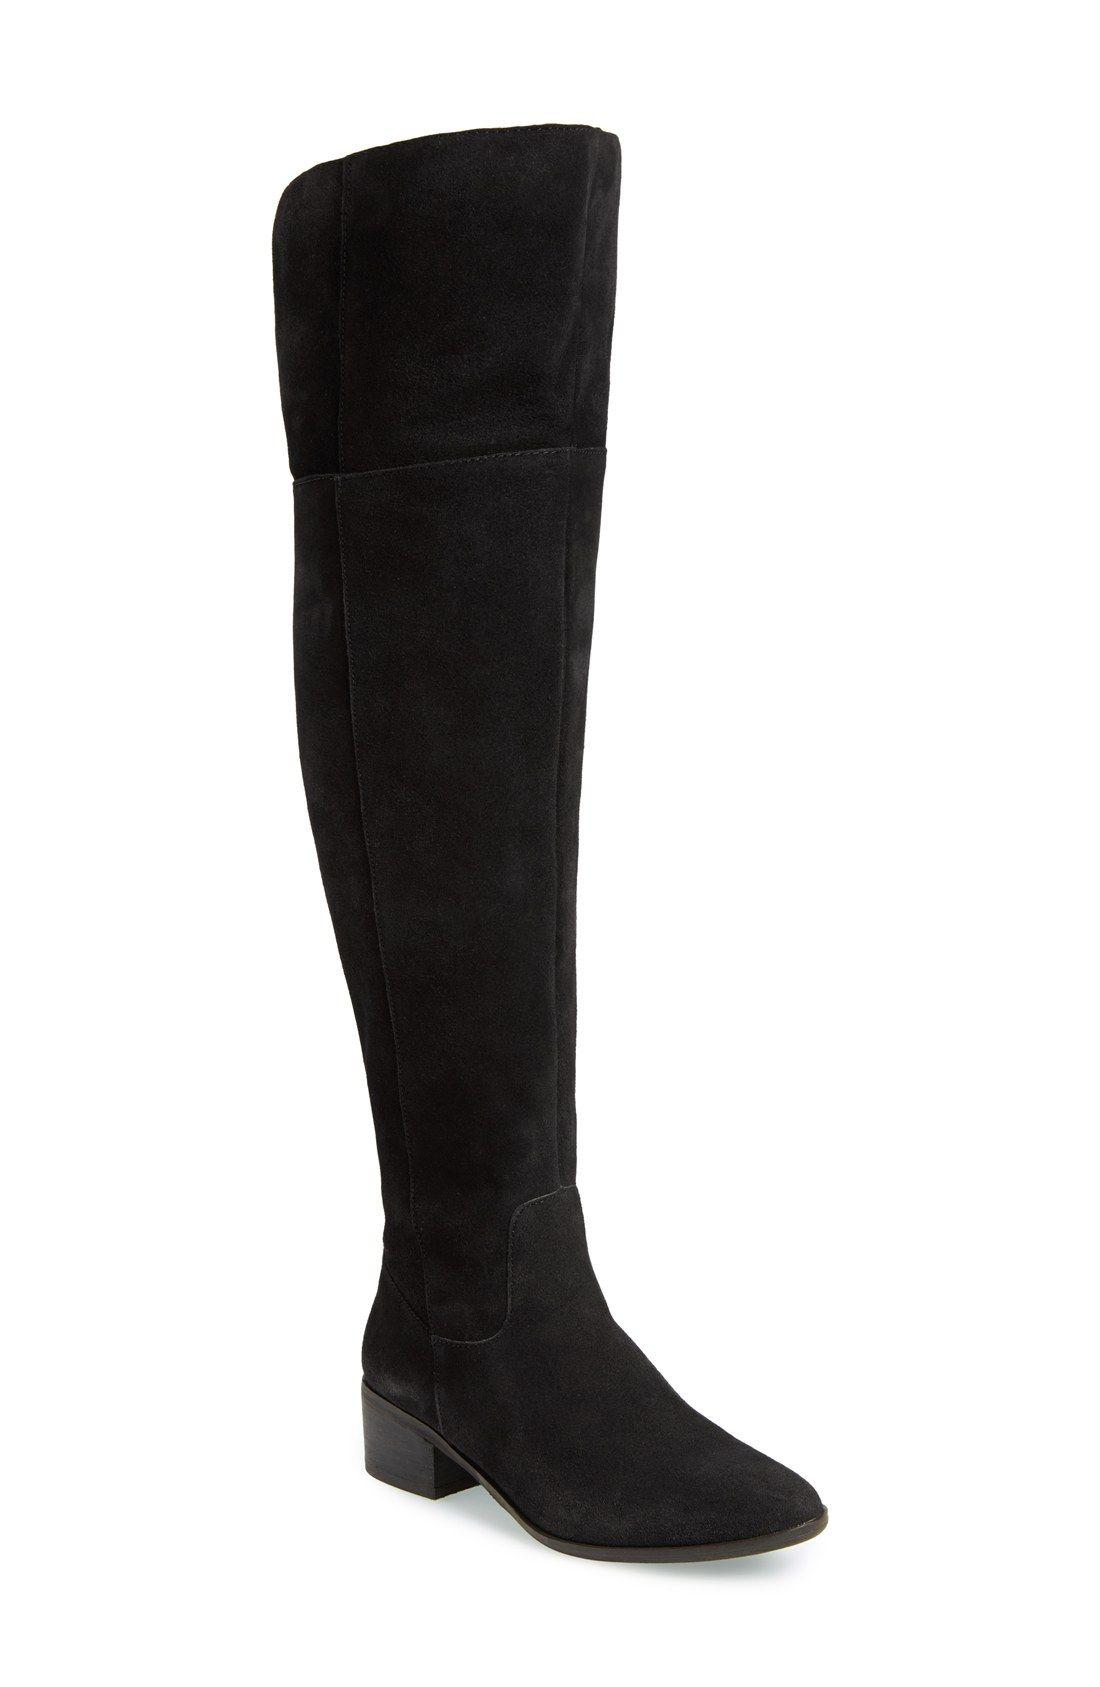 856daa2a9e1 To cuff or not to cuff these lavish suede over-the-knee Steve Madden boots